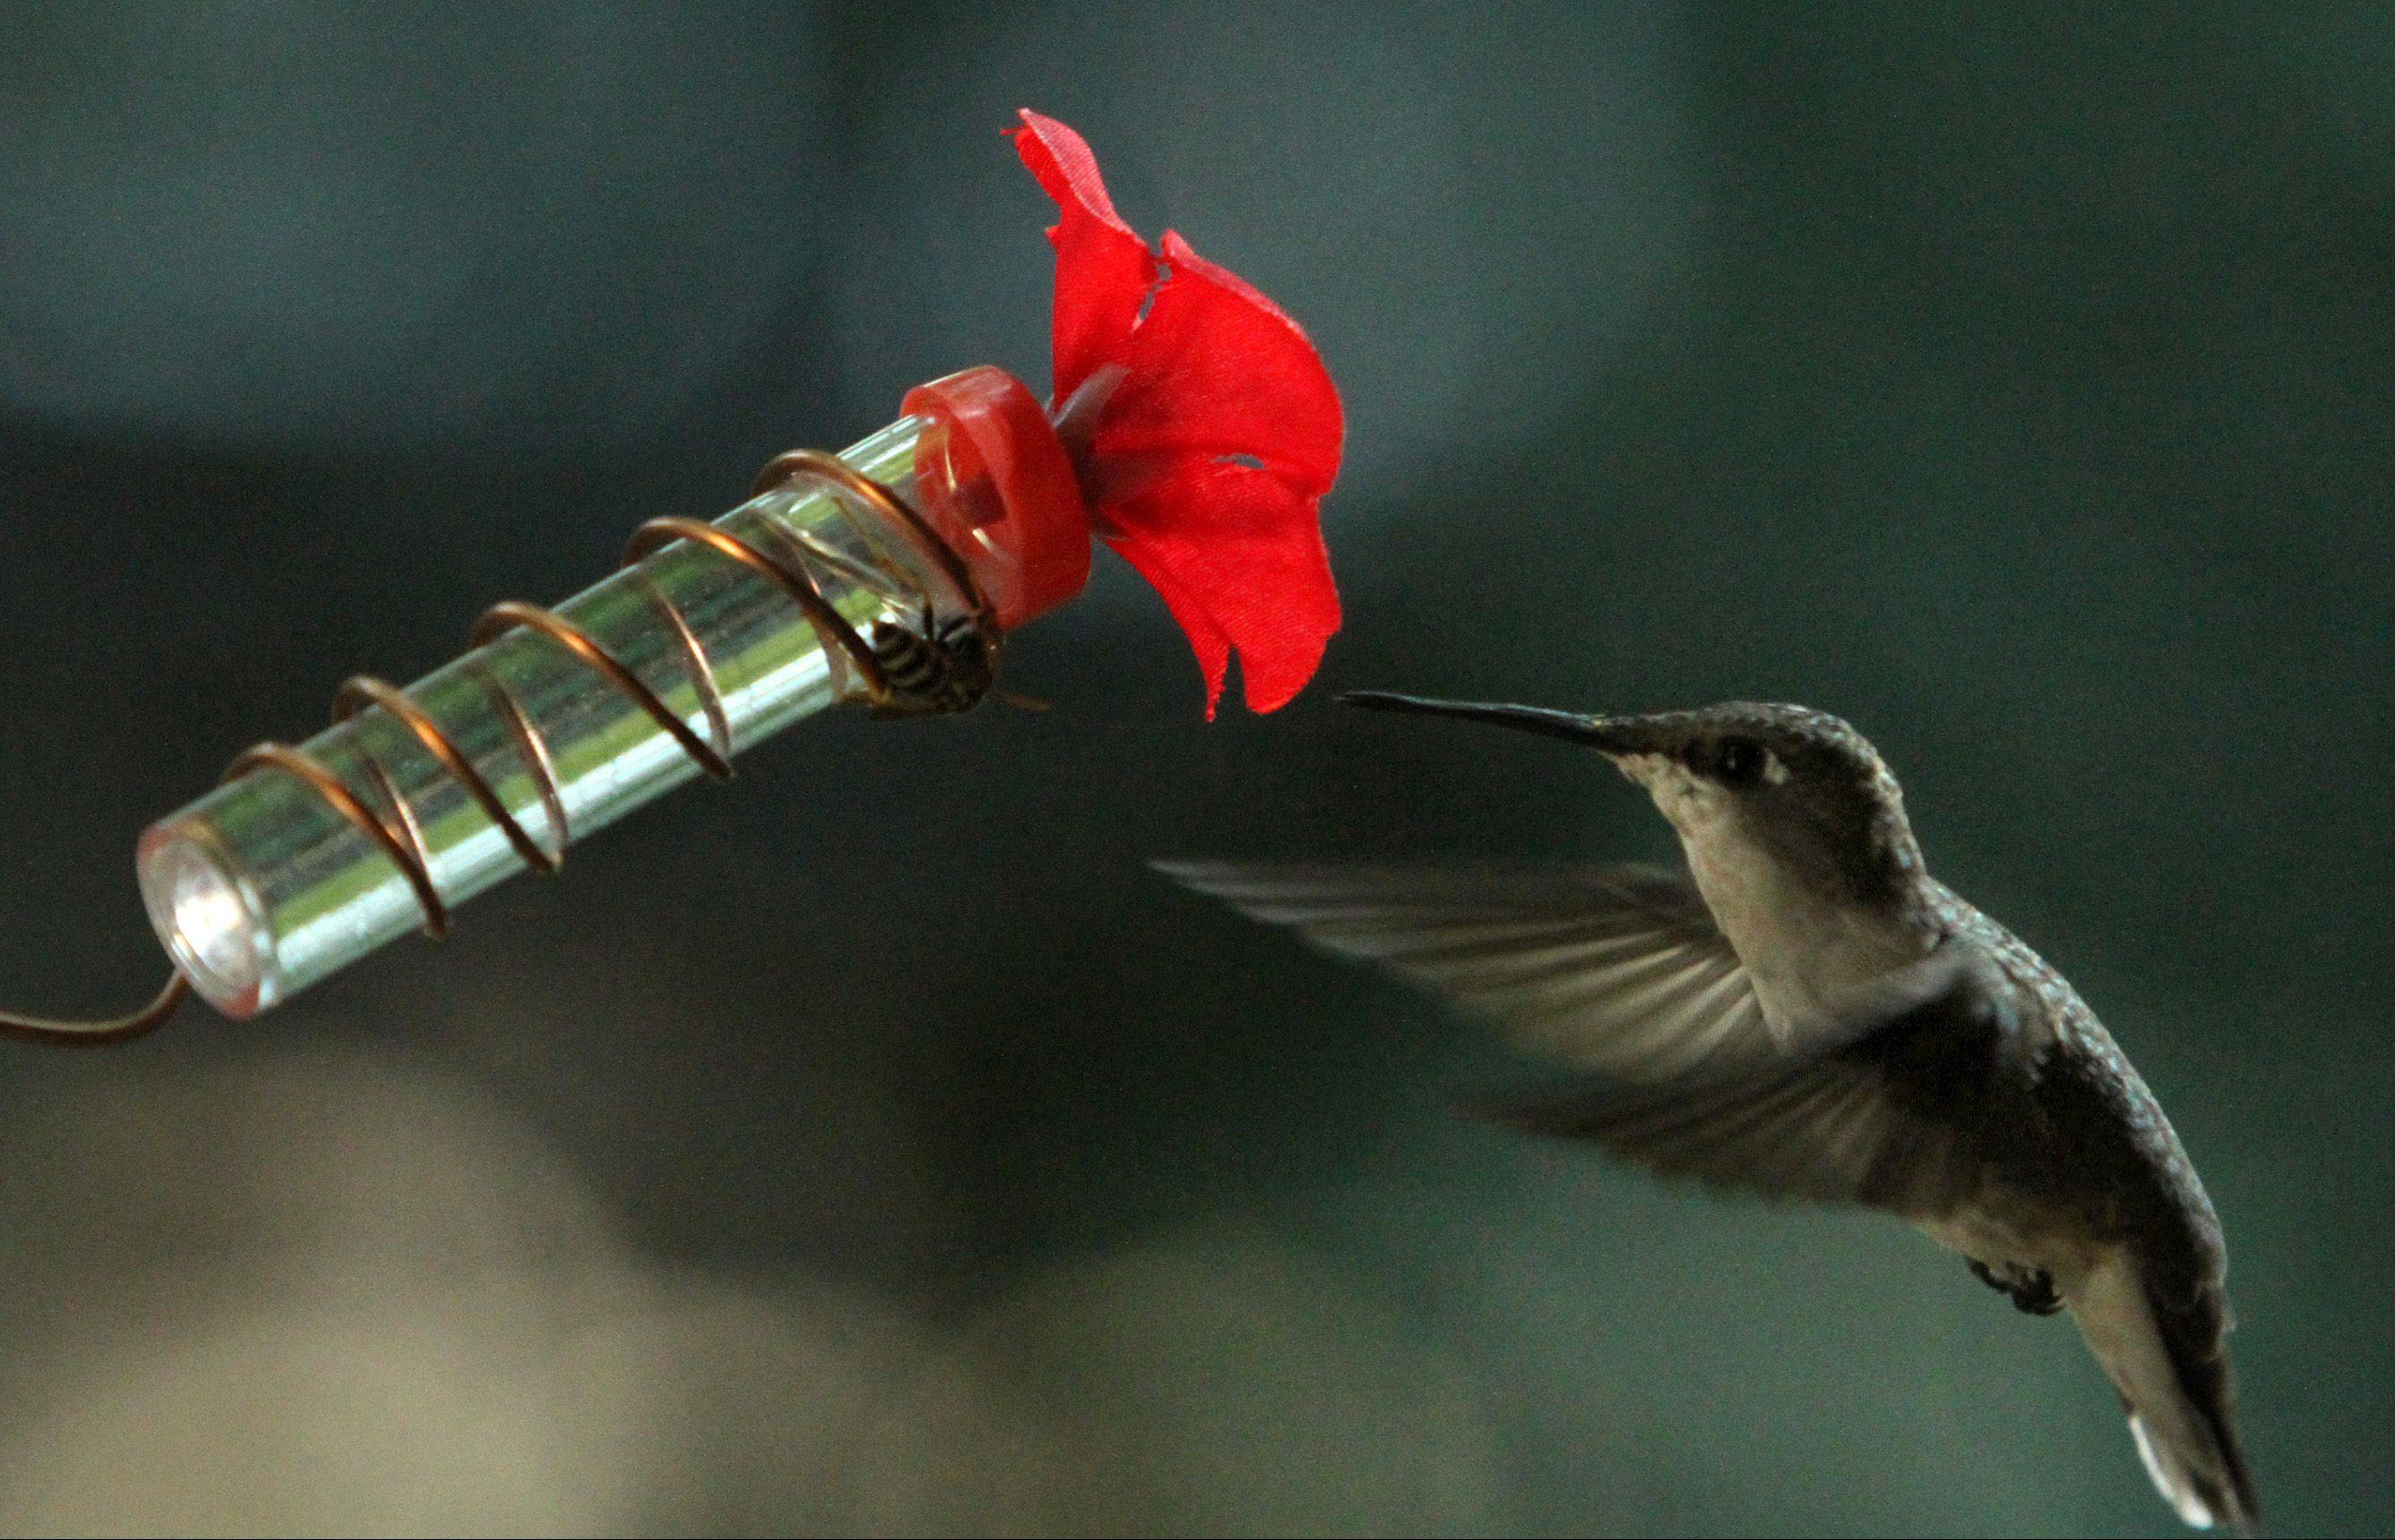 The sugar water-filled feeder is made from a 3-inch glass soil tester tube and a plastic flower.